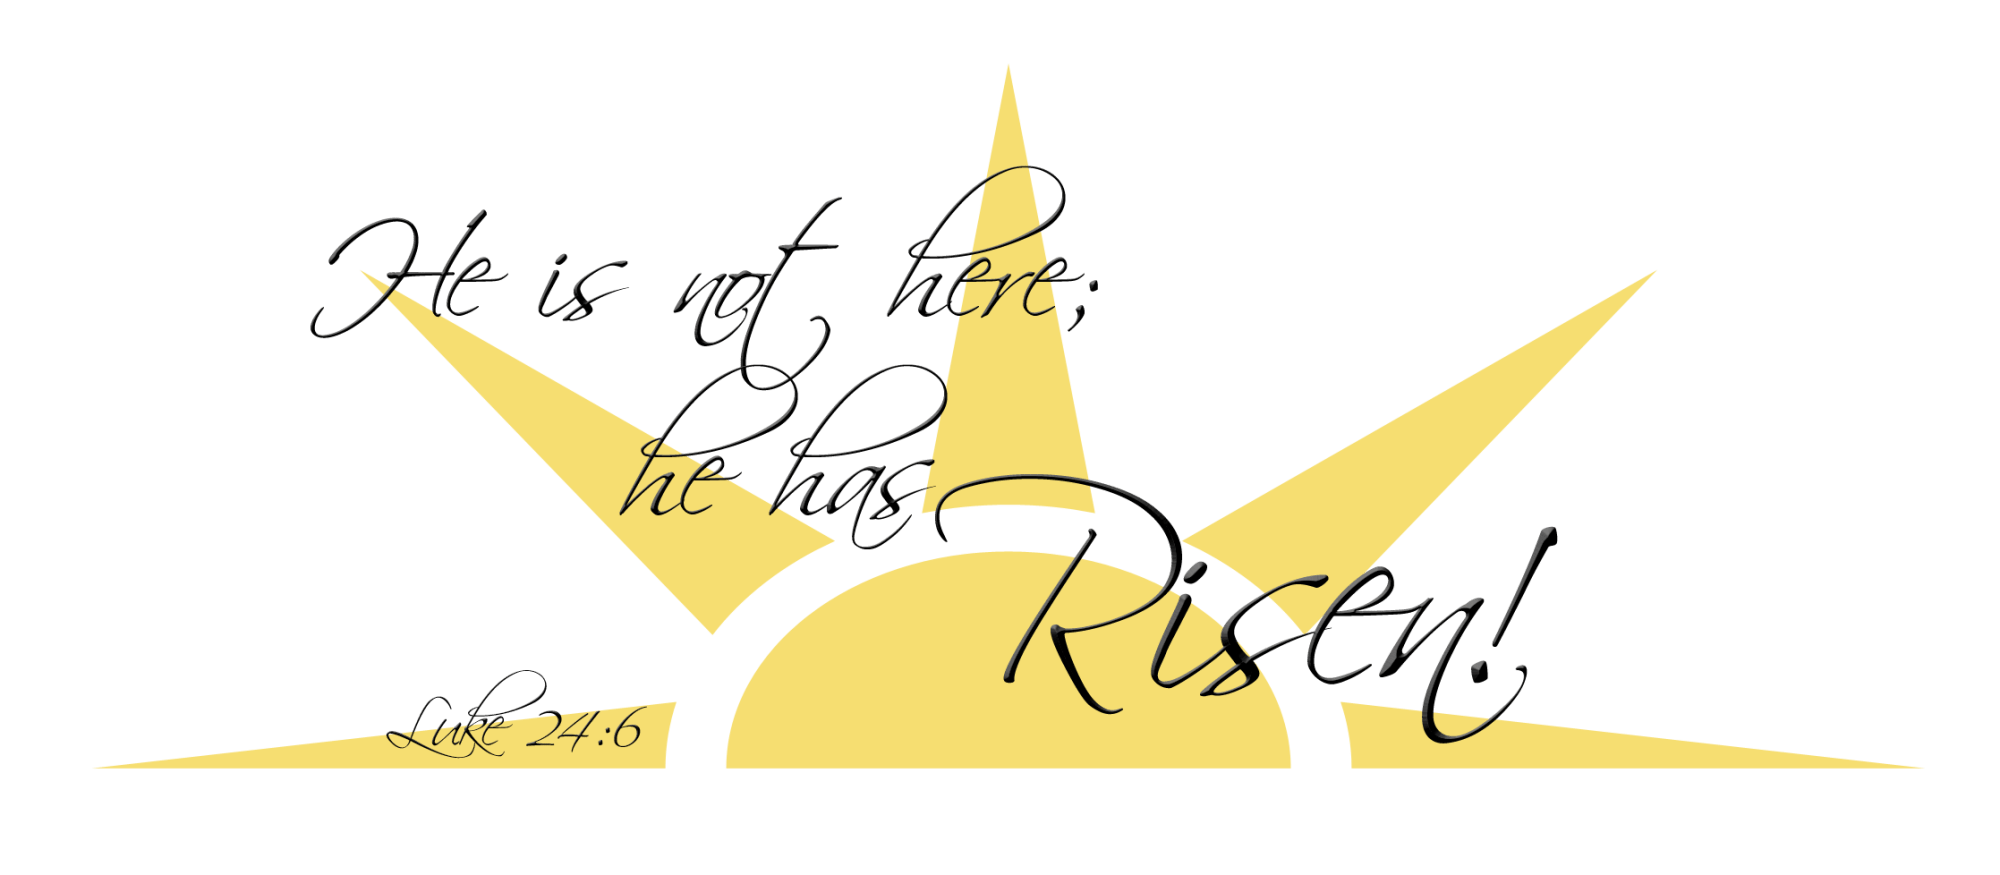 hight resolution of he has risen clip art n2 free download